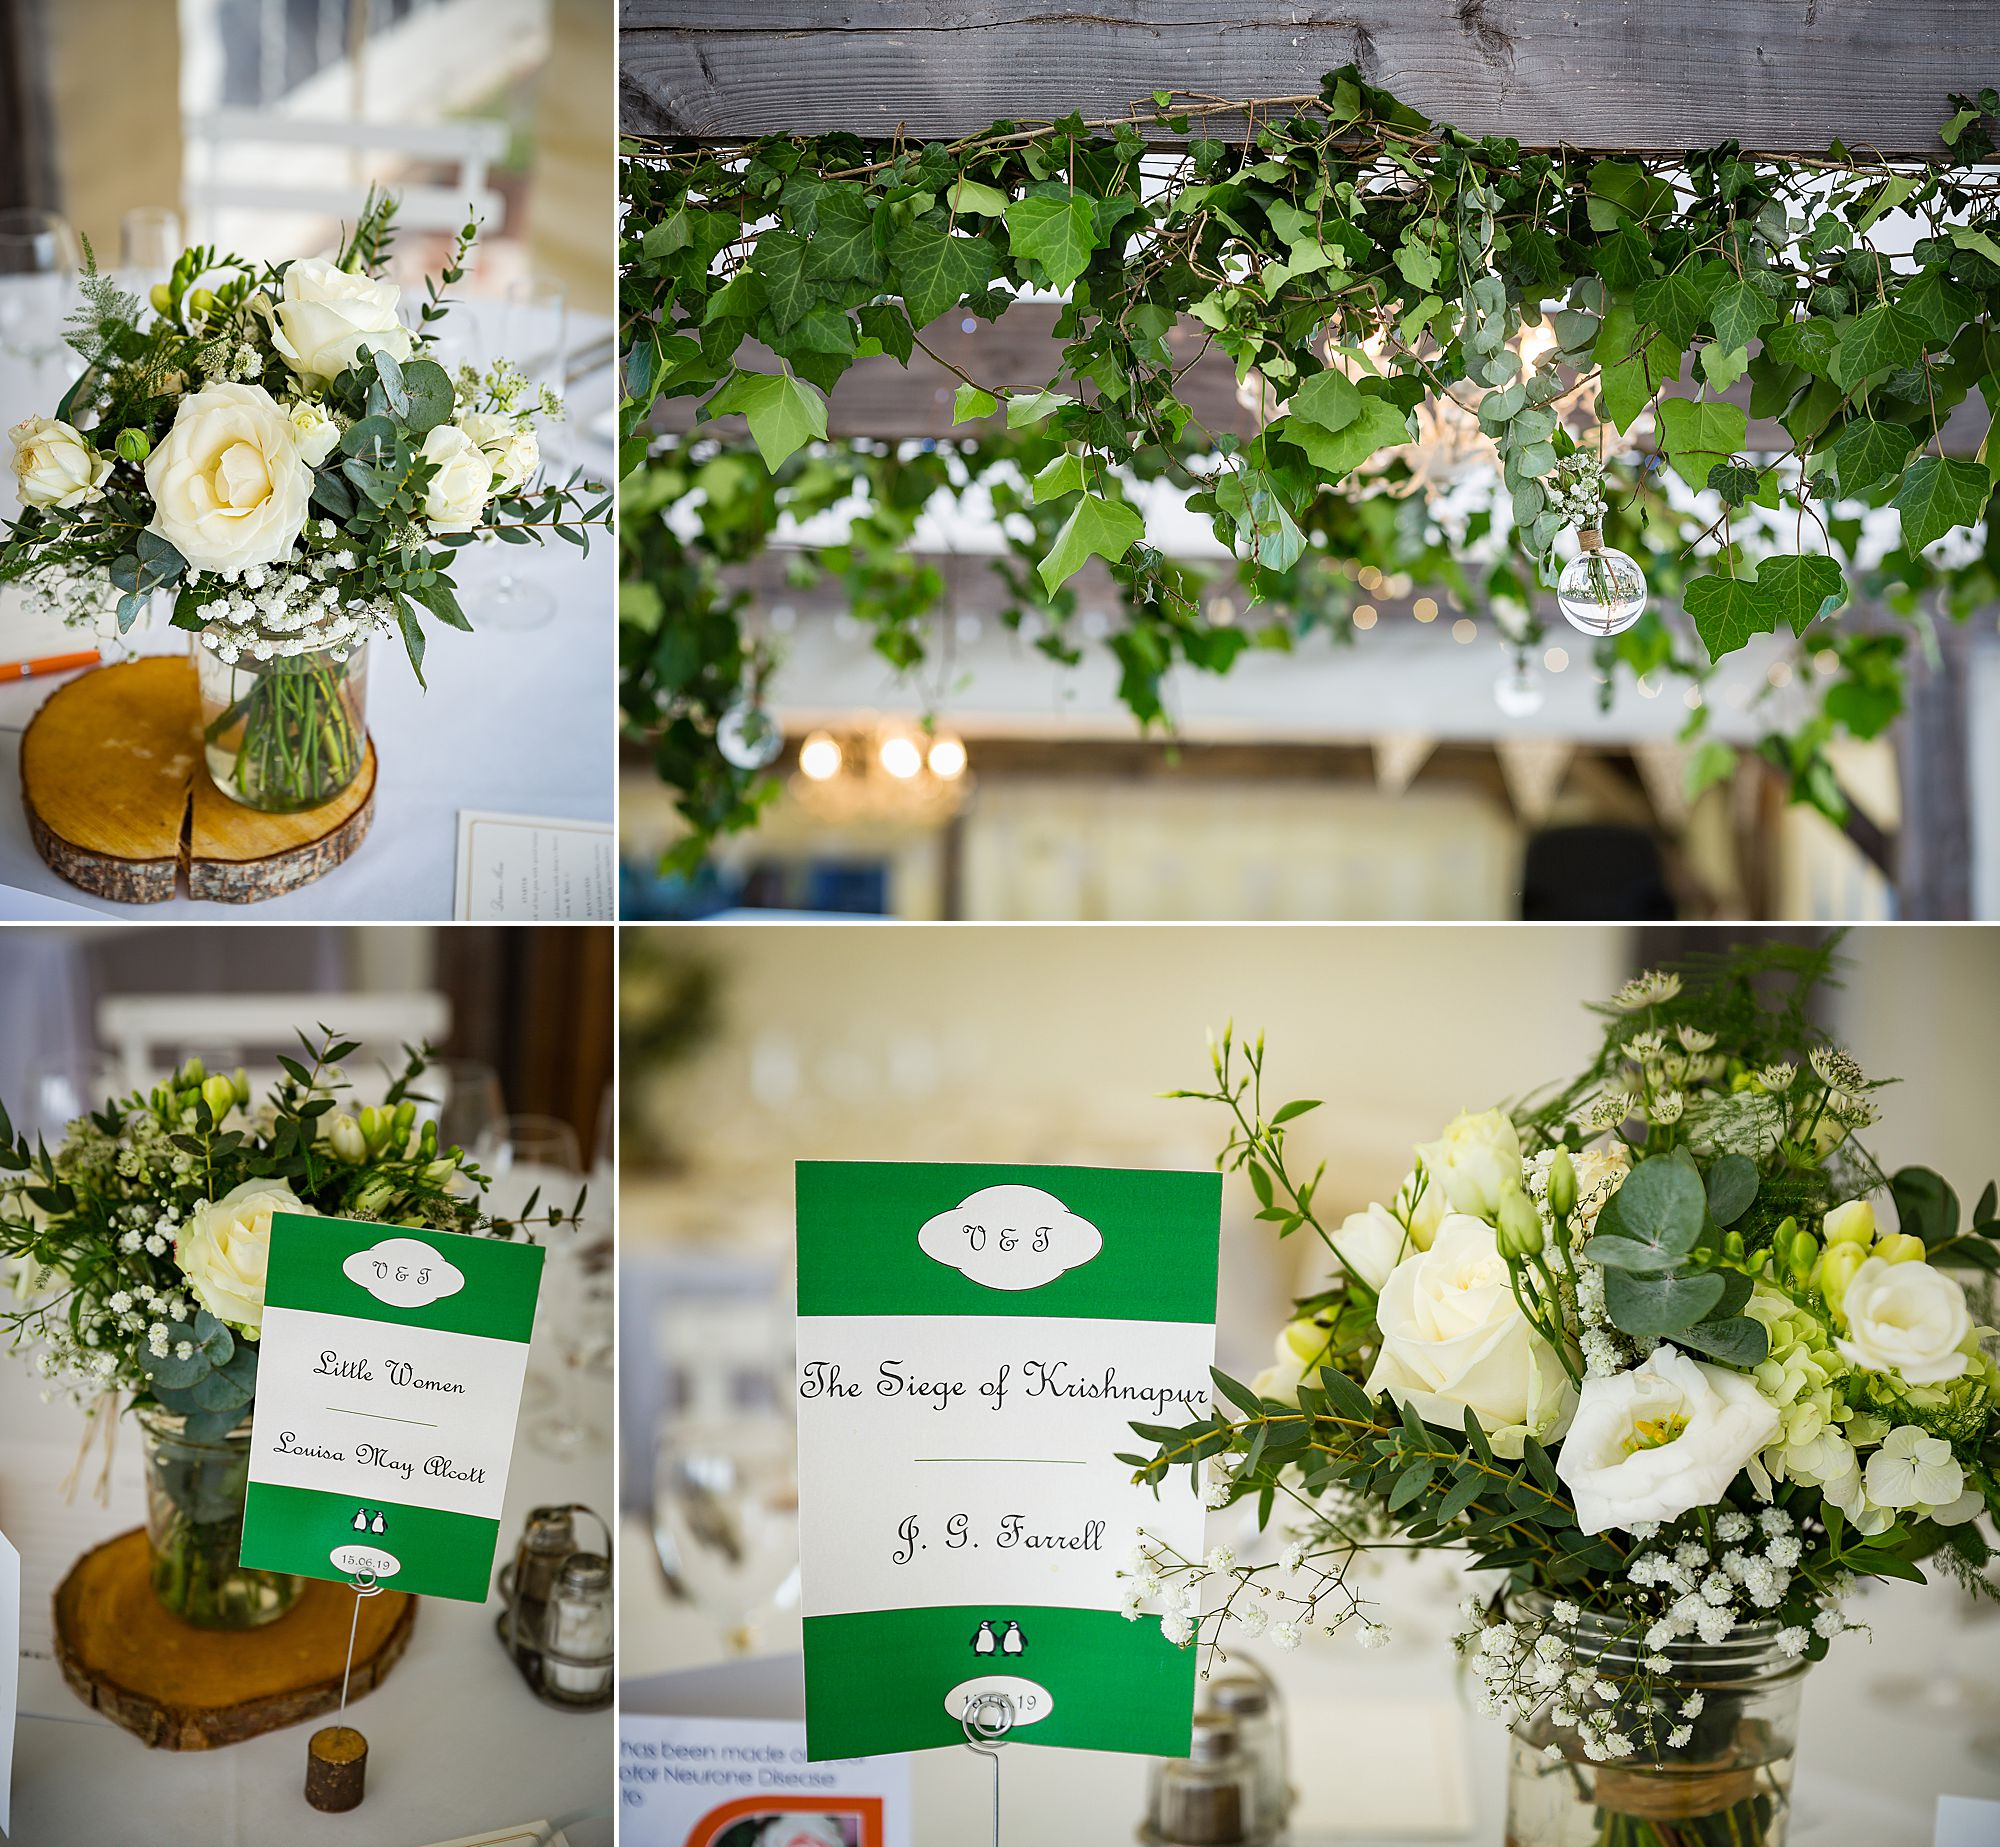 Chateau de Brametourte wedding tables book inspired